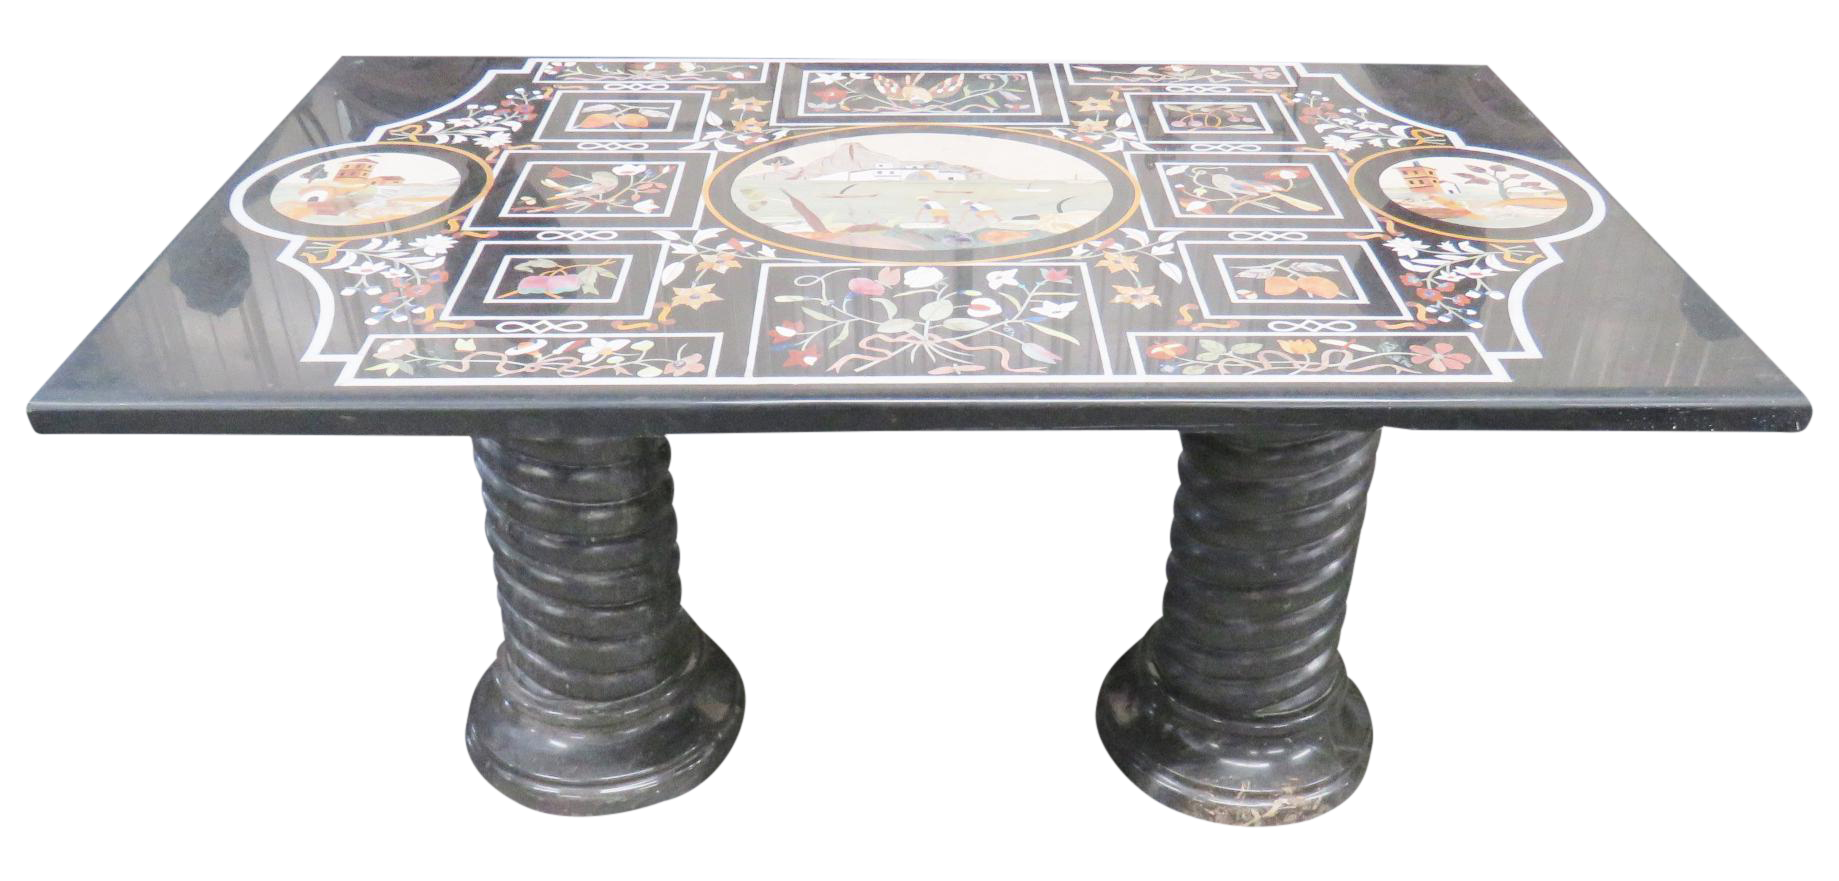 Pietra Dura Italian Inlaid Marble Top Dining Table Chairish : 736a08df 8ced 4baf a33f 8c74bef1989baspectfitampwidth640ampheight640 from www.chairish.com size 640 x 640 jpeg 32kB